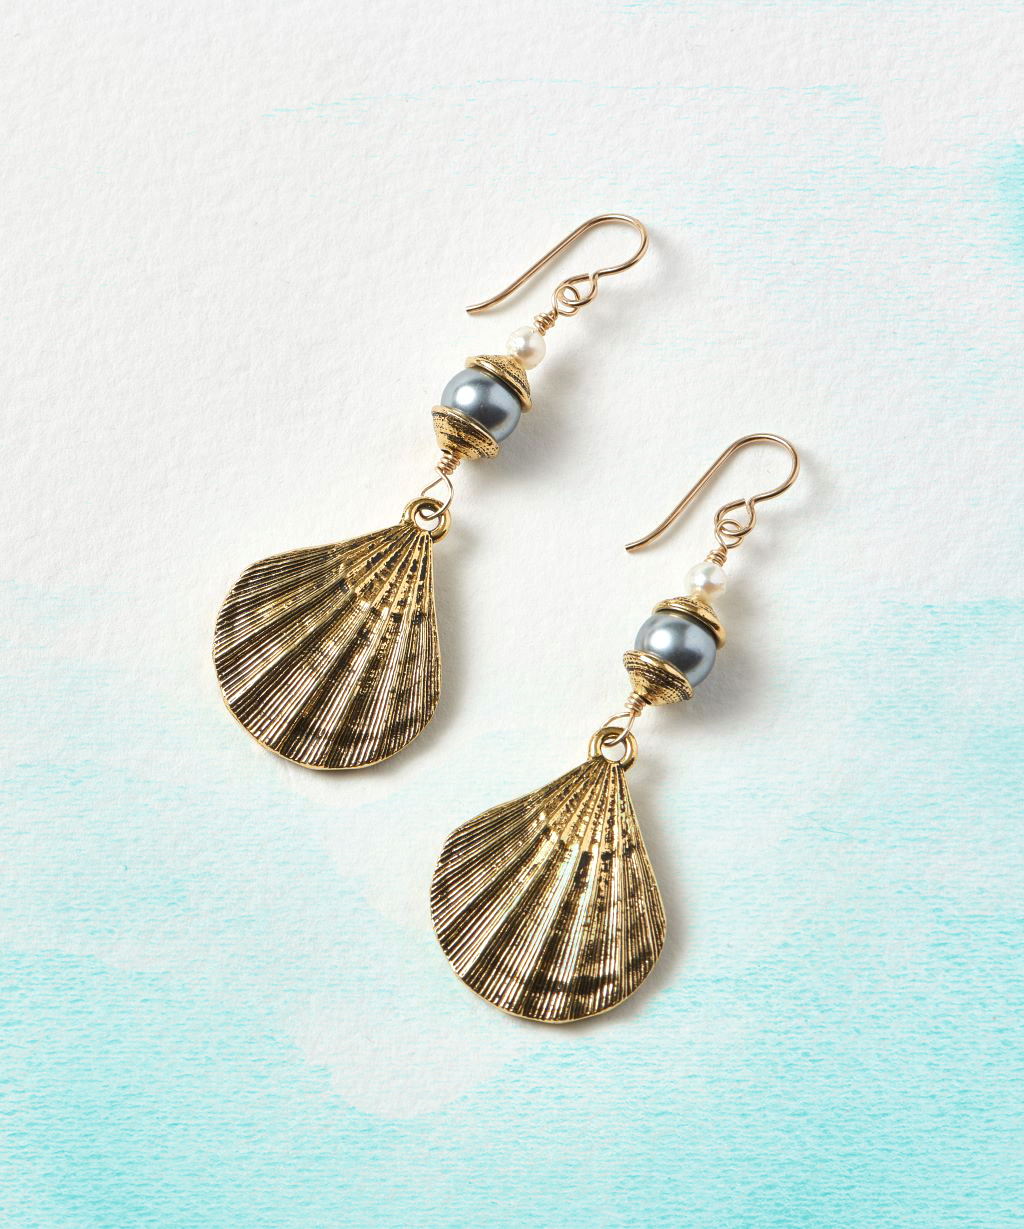 shell-pendant-earrings2-1024px.jpg